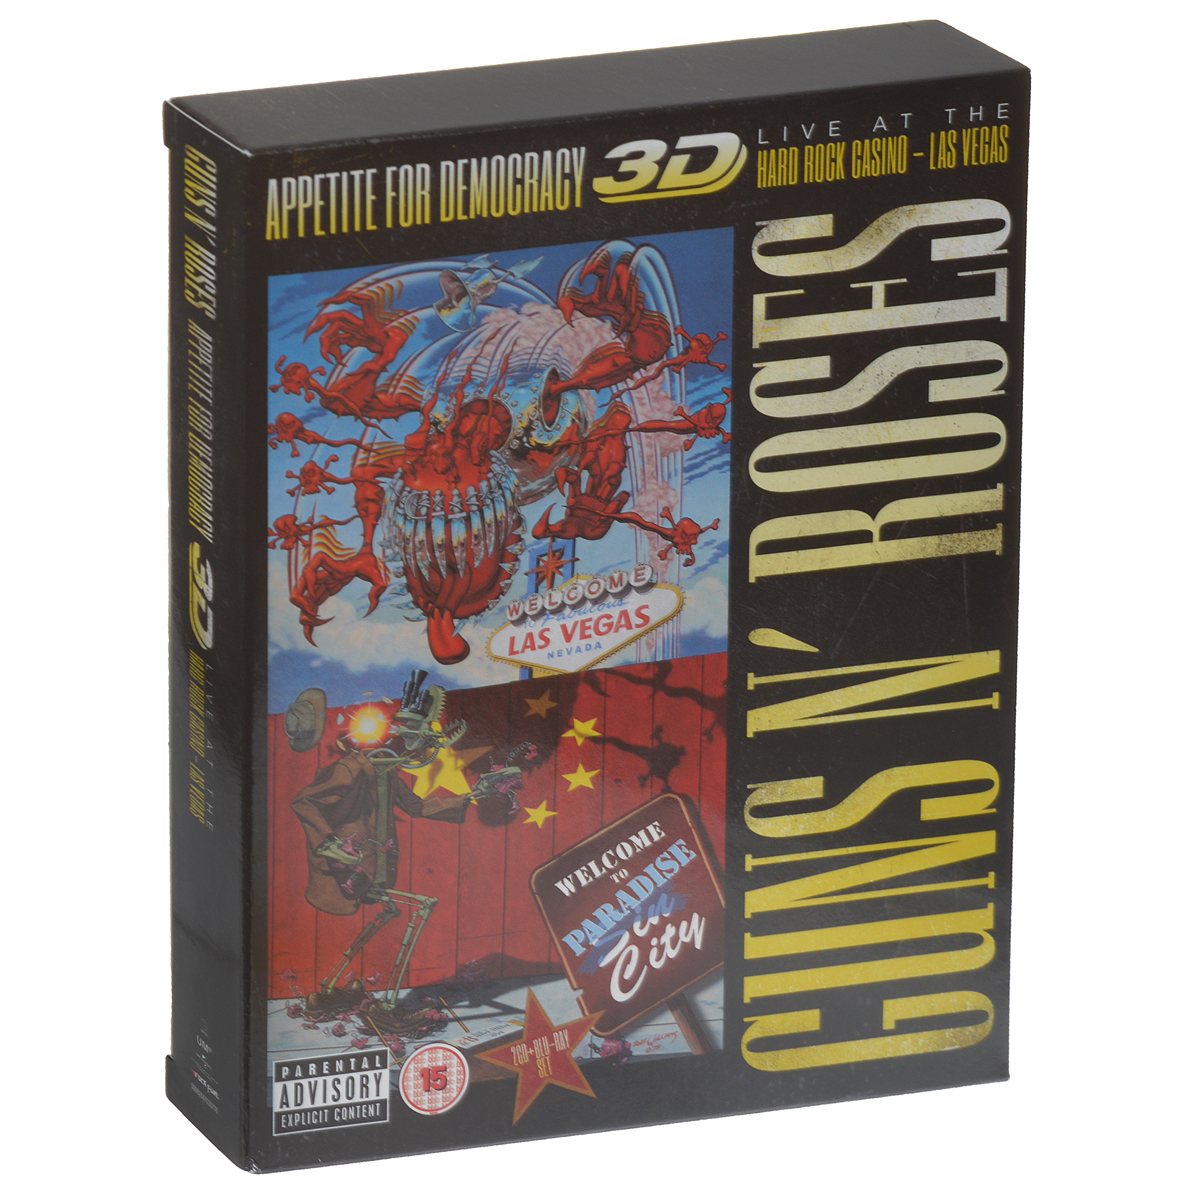 Guns N' Roses Guns N' Roses. Appetite For Democraty. Live At The Hard Rock Casino - Las Vegas (2 CD + Blu-ray) yours mine